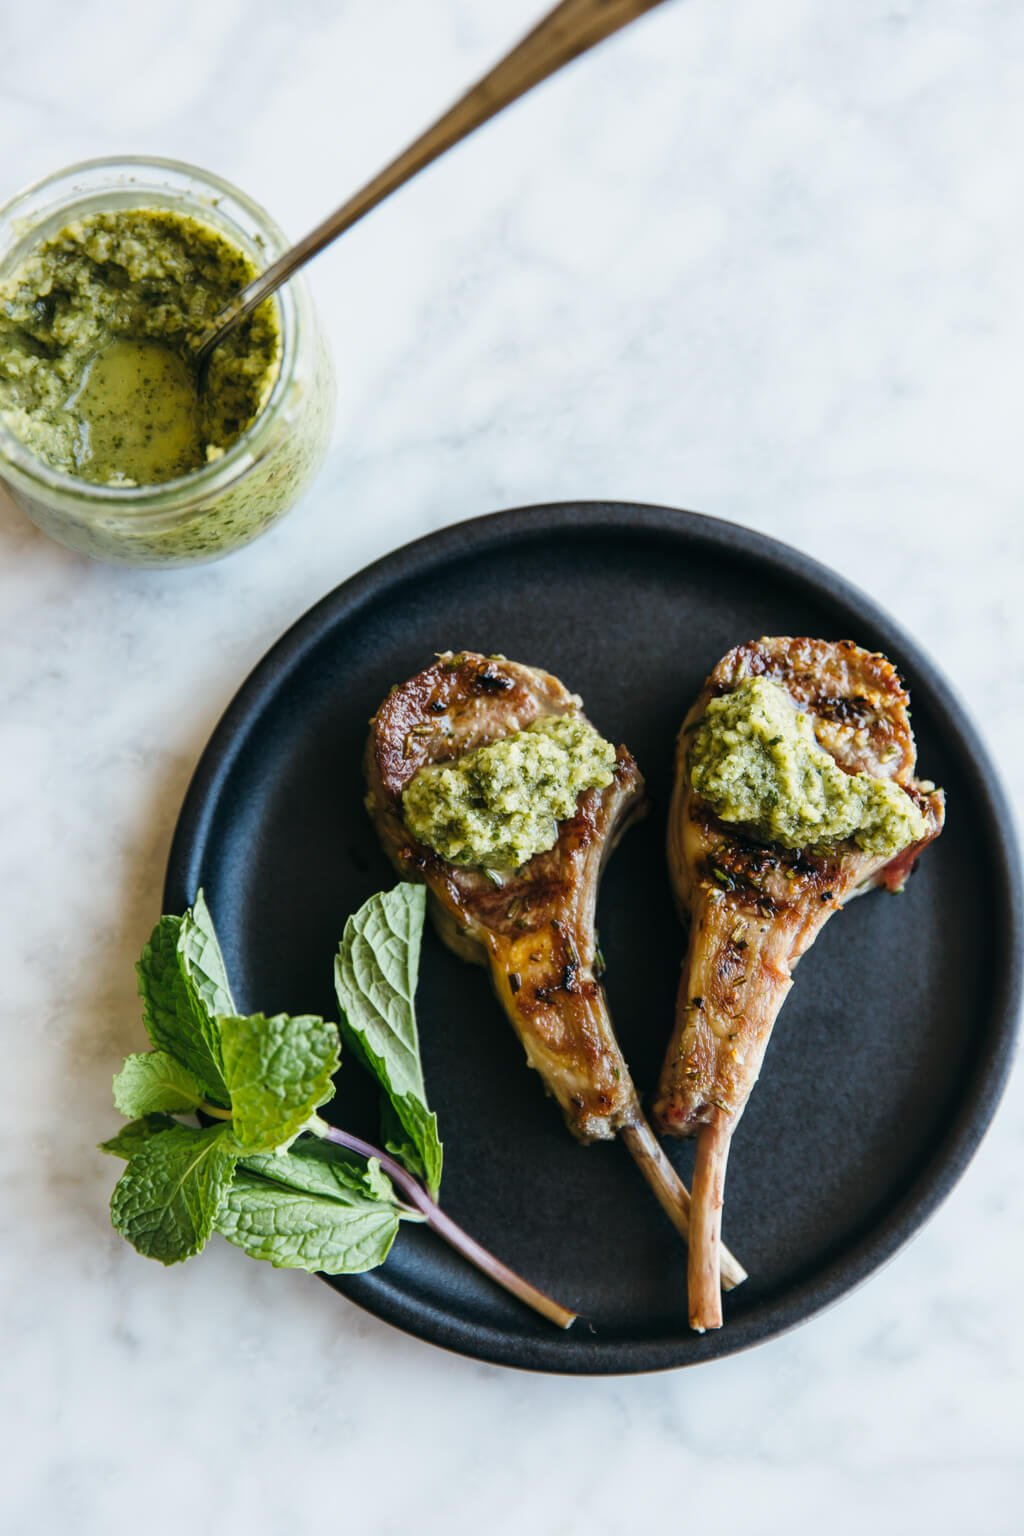 Rosemary grilled lamb chops with mint apple sauce. Paleo-friendly.